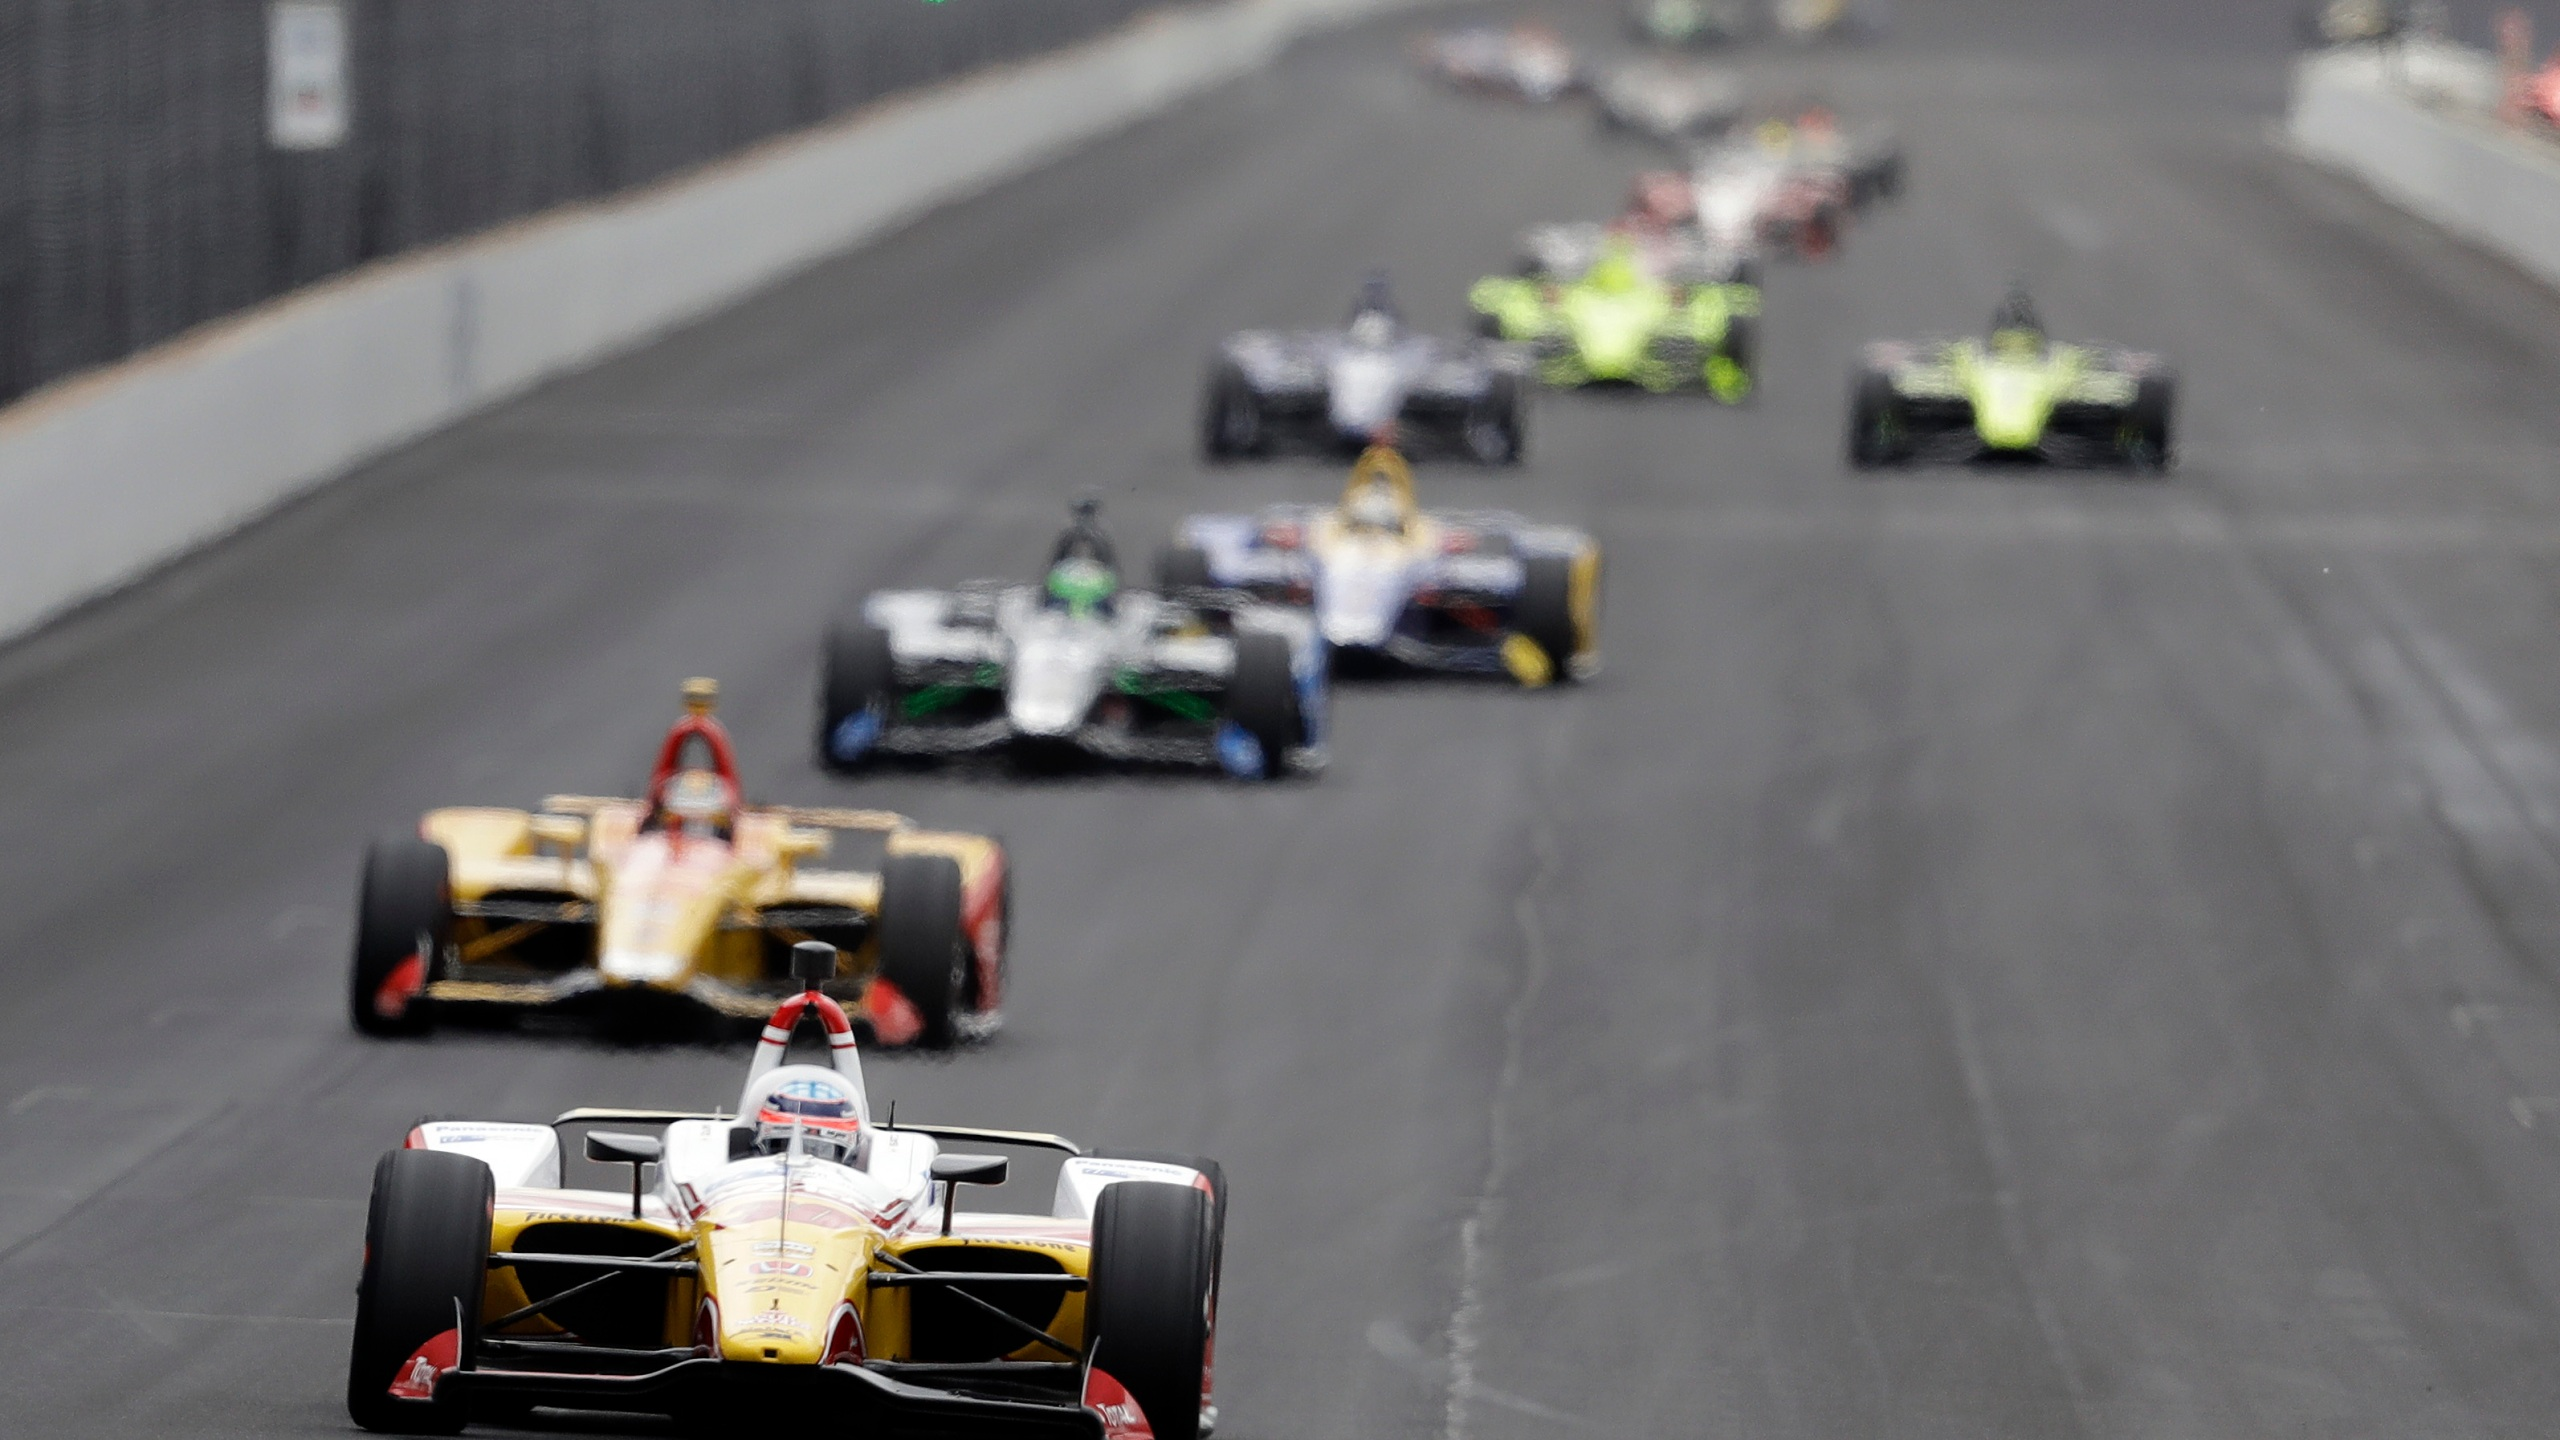 IndyCar Indy 500 Auto Racing_1558461684930